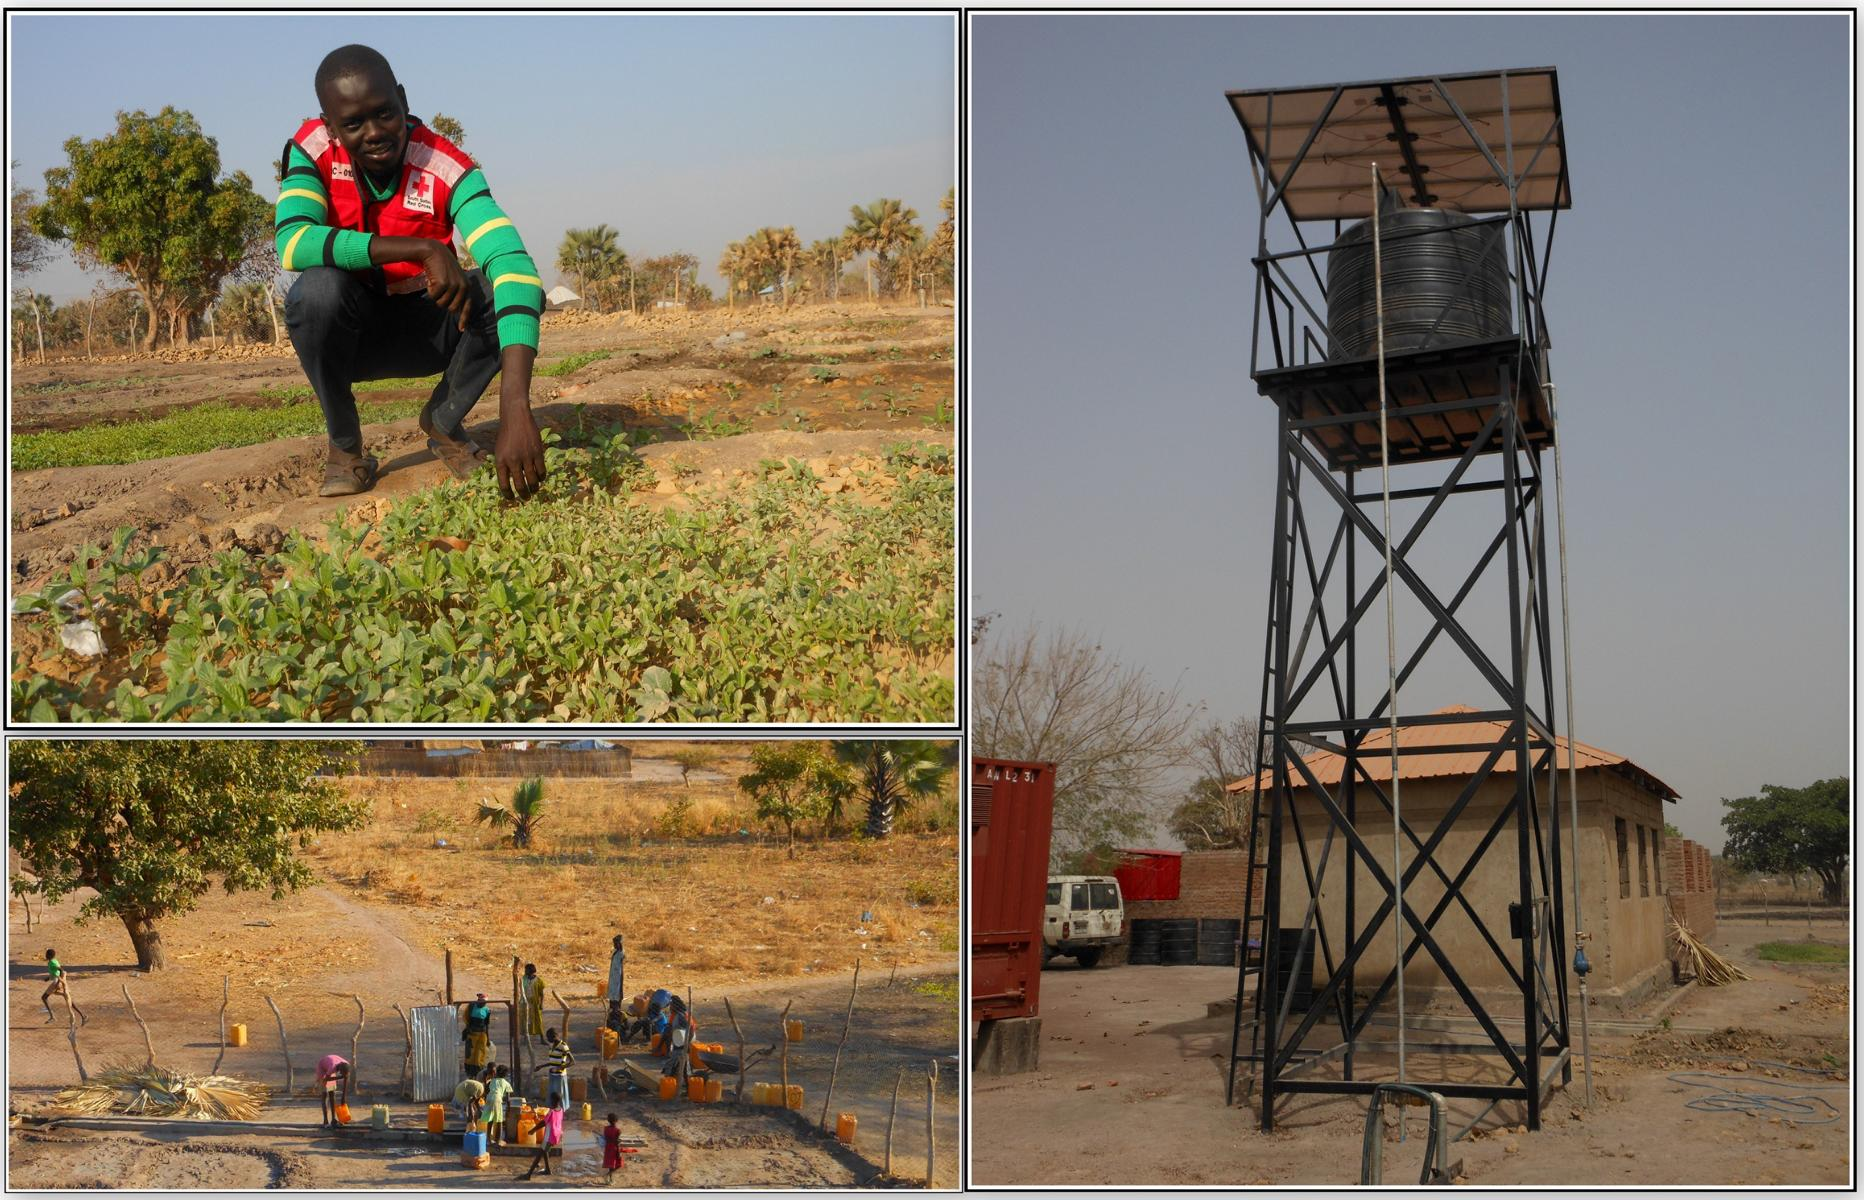 The solar water yard in the branch does not only provide water to the people around but also irrigates the volunteers garden